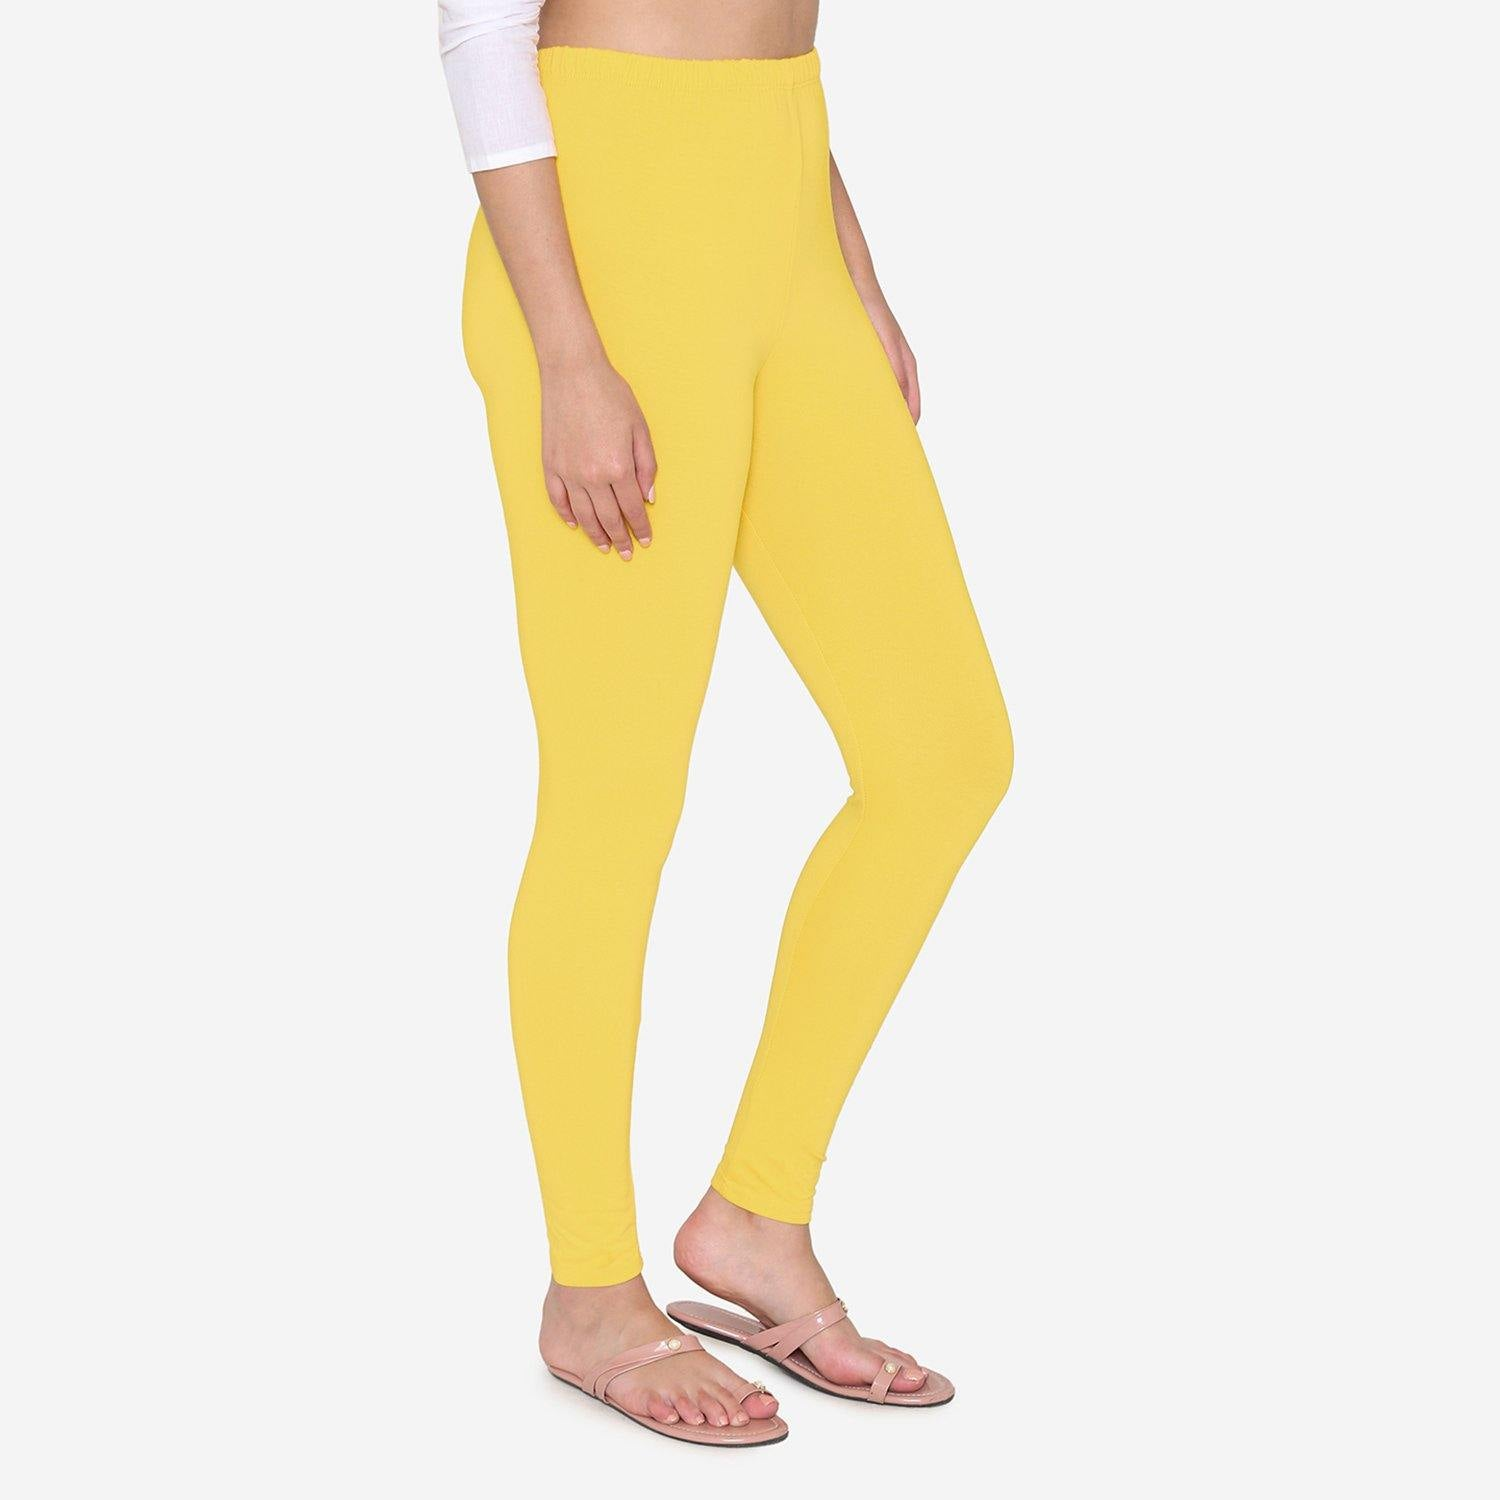 Vami Women's Cotton Stretchable Ankle Leggings - Empire Yellow